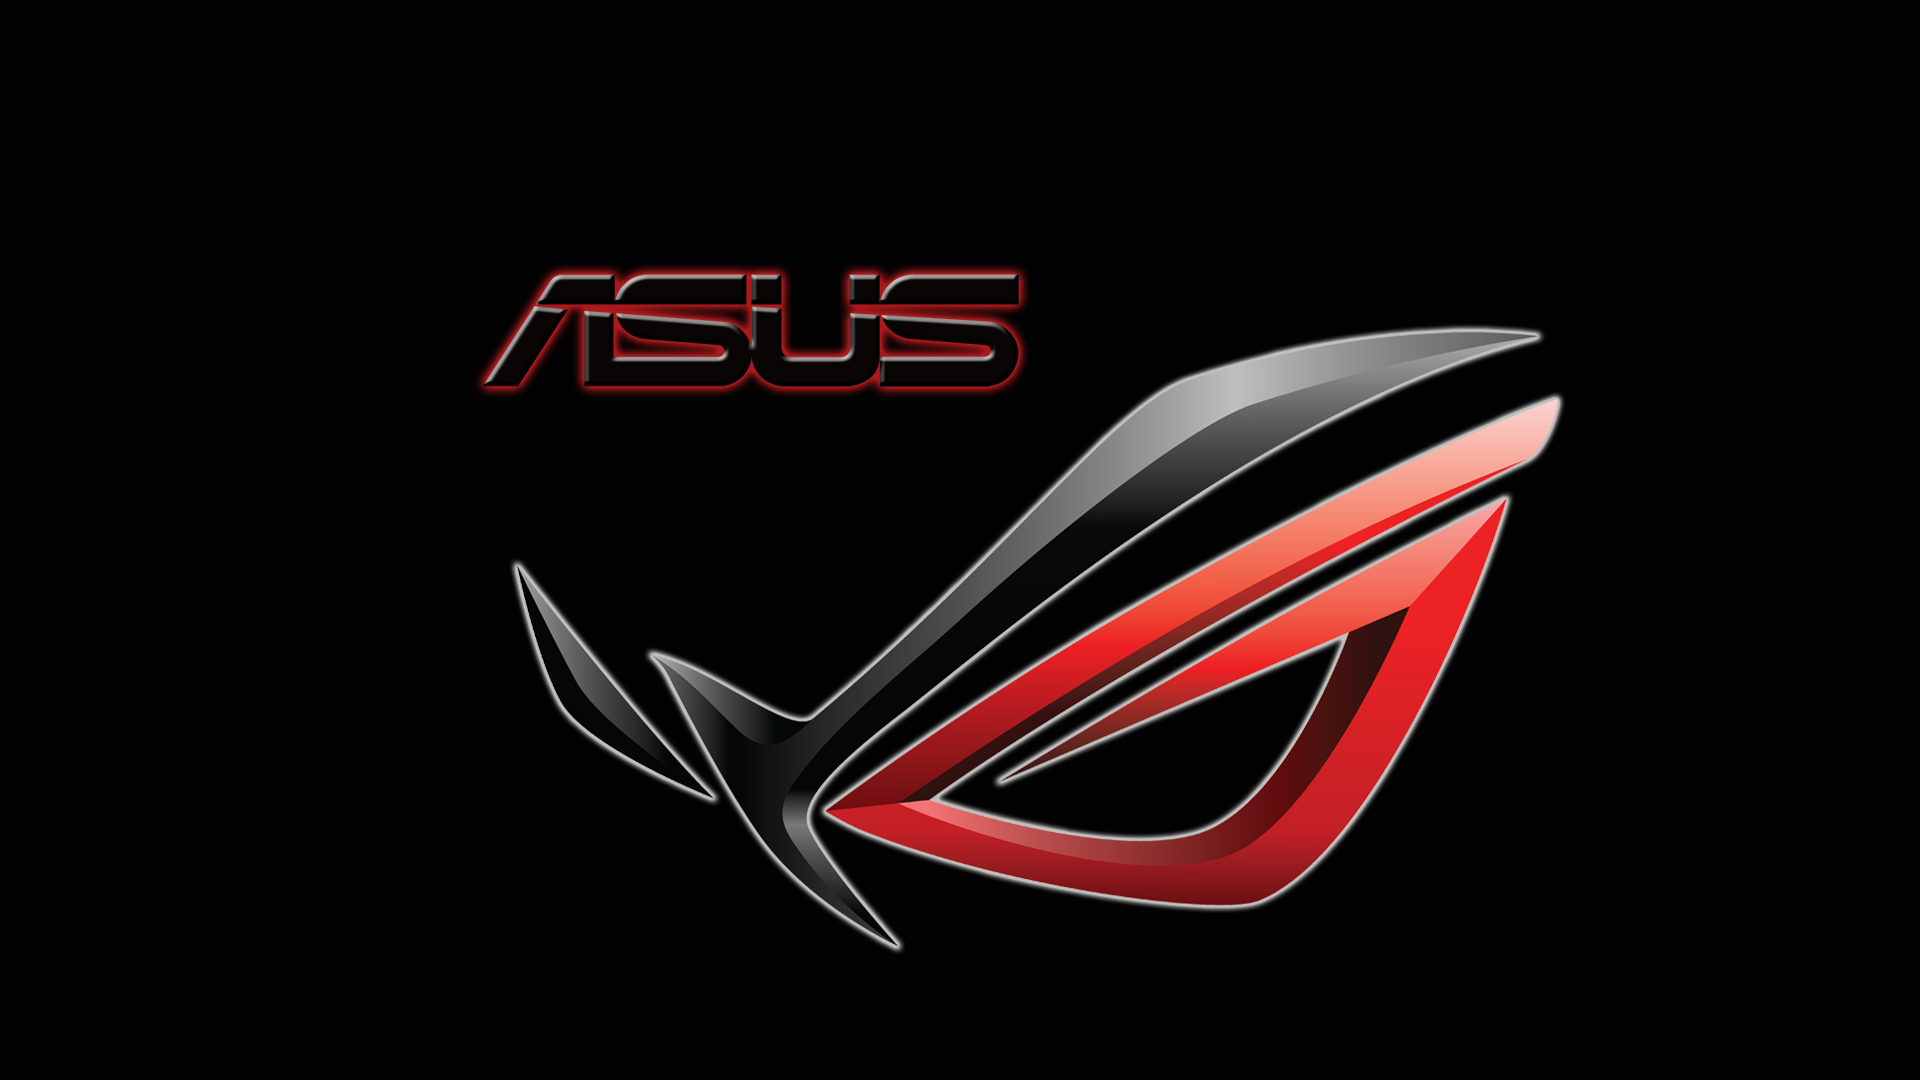 asus red tecnology wallpaper - photo #26